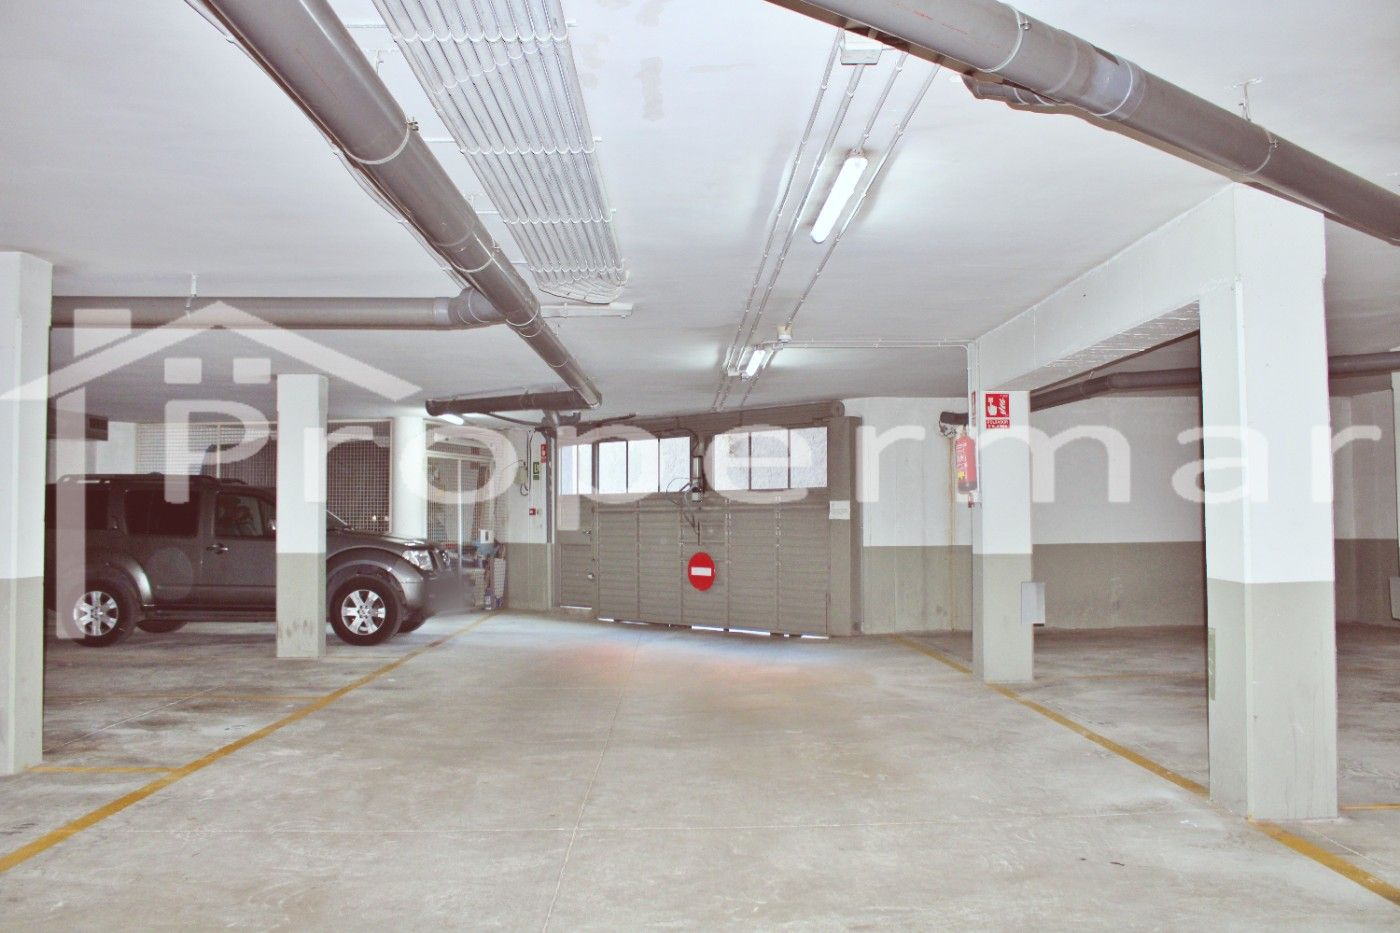 Parking coche  Centro. Plaza de parking en la roca !!